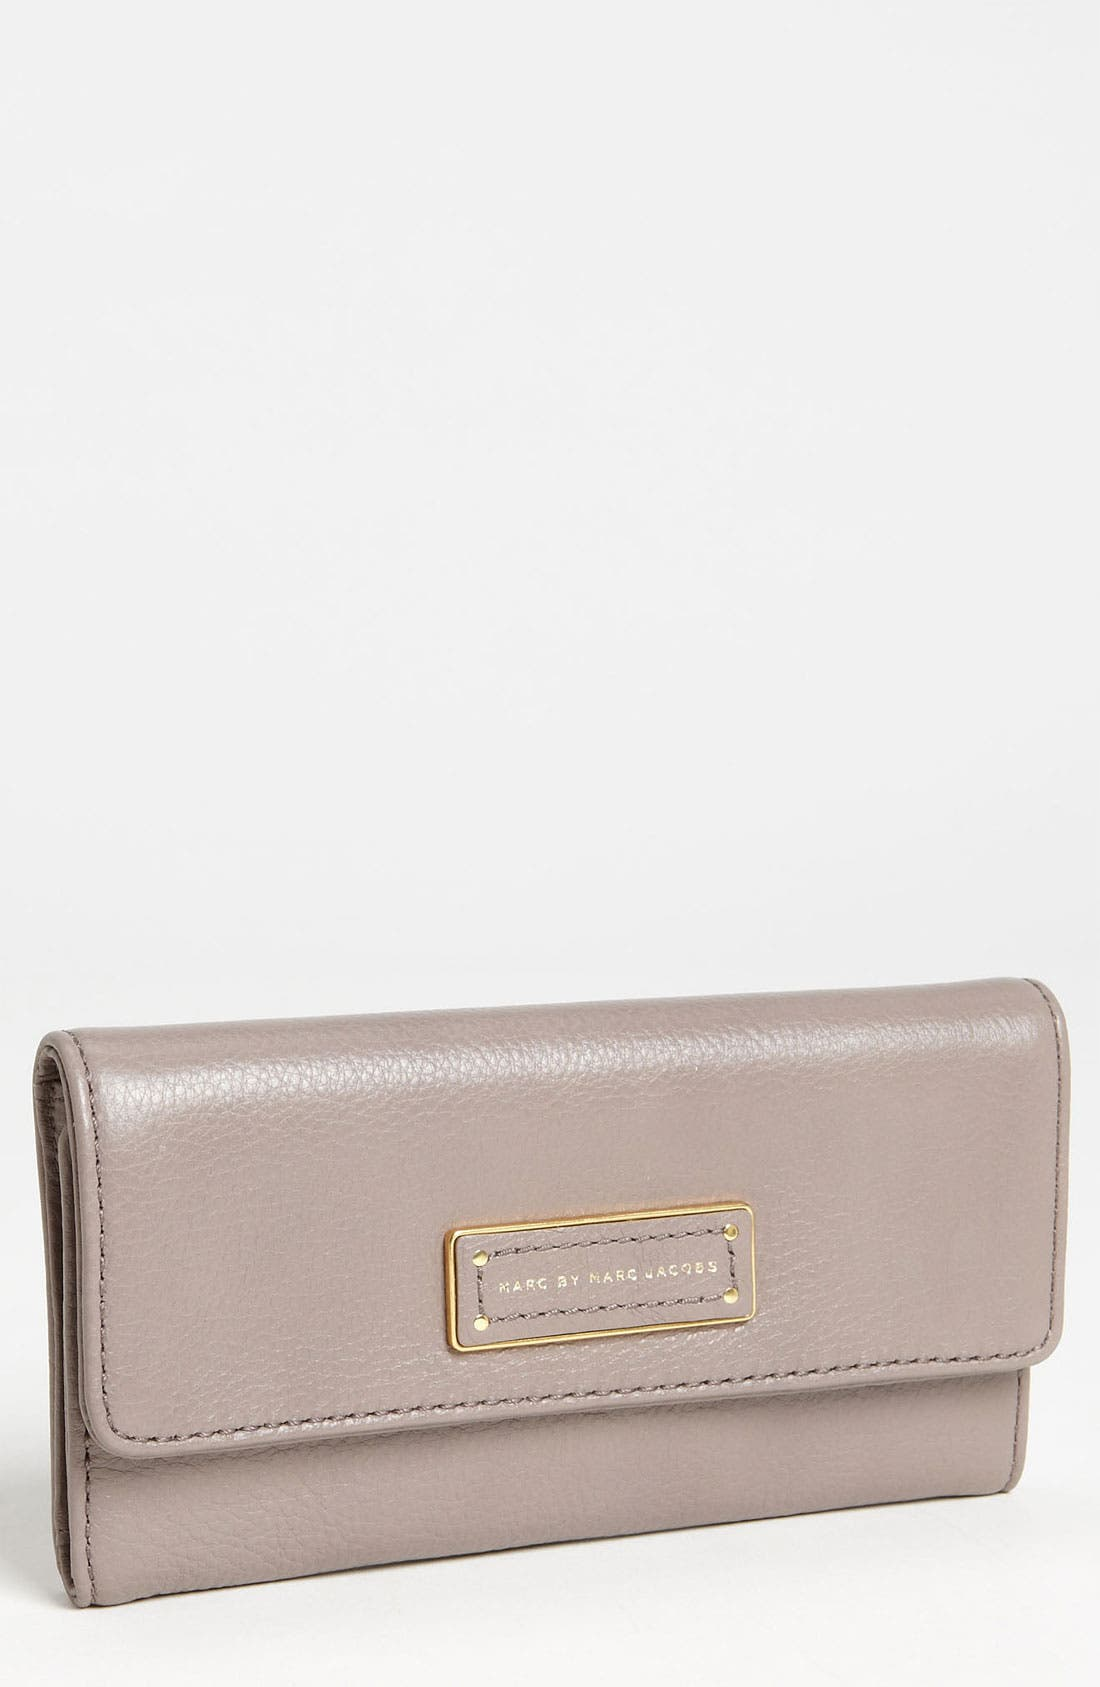 Alternate Image 1 Selected - MARC BY MARC JACOBS 'Too Hot to Handle' Wallet